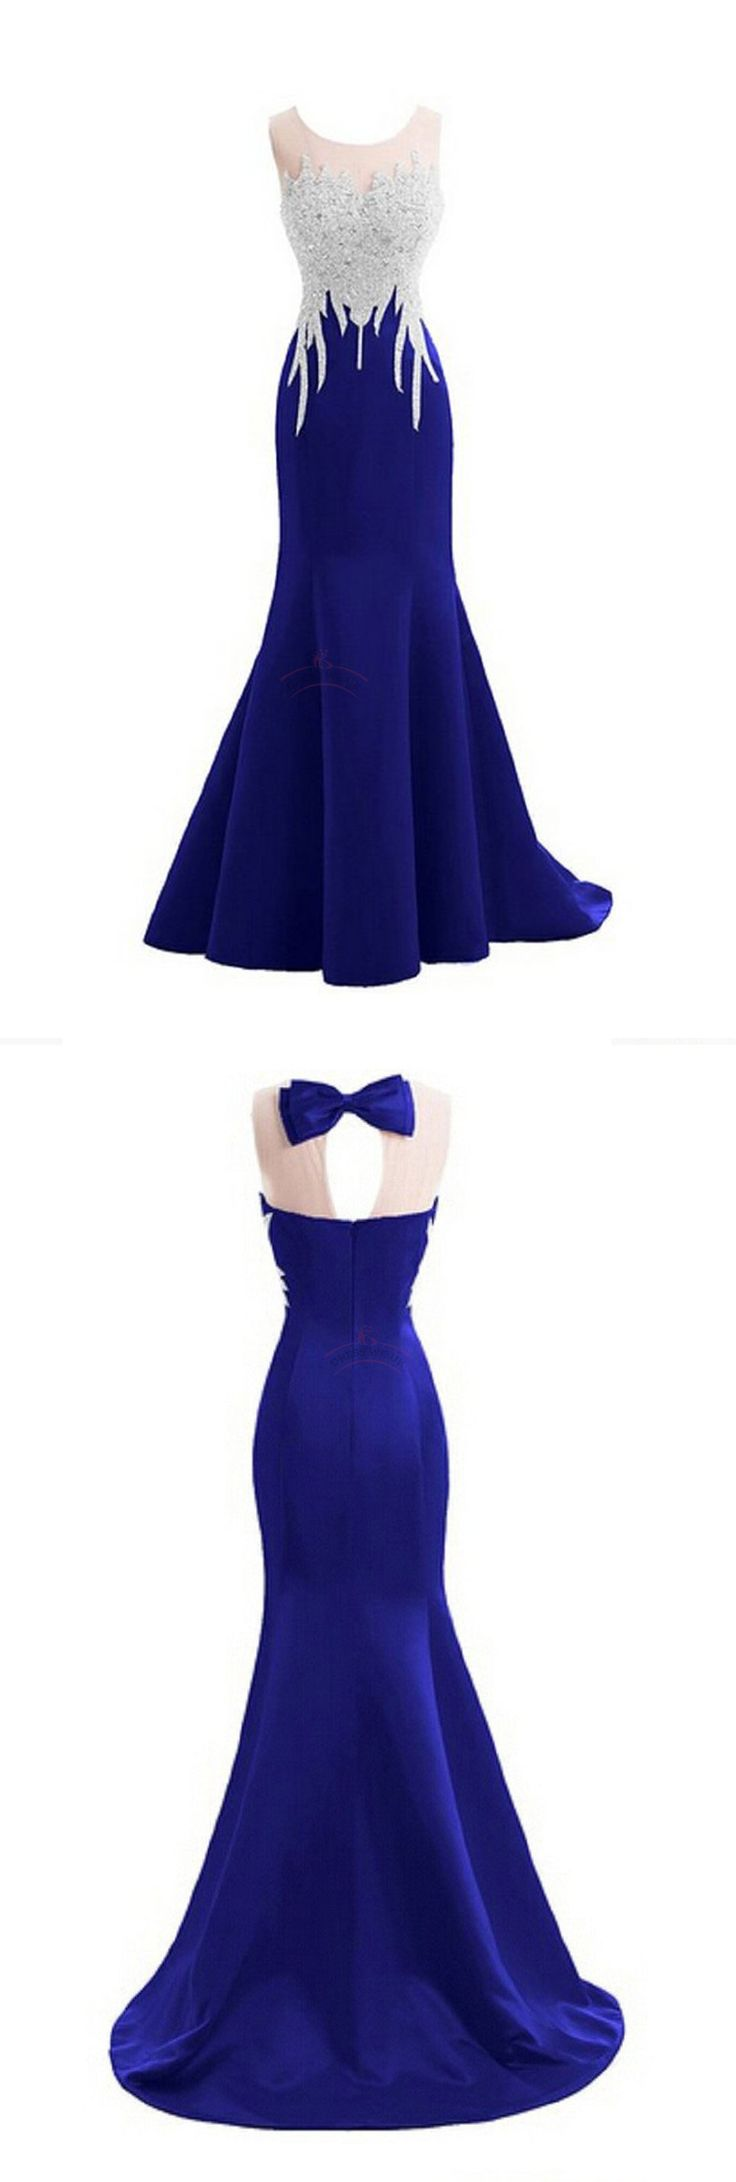 Sparkly Crystal Prom Dresses,Mermaid Prom Dresses,Sexy Backless Prom Dresses,Sleeveless Prom Dresses,Long Prom Dresses - 2016